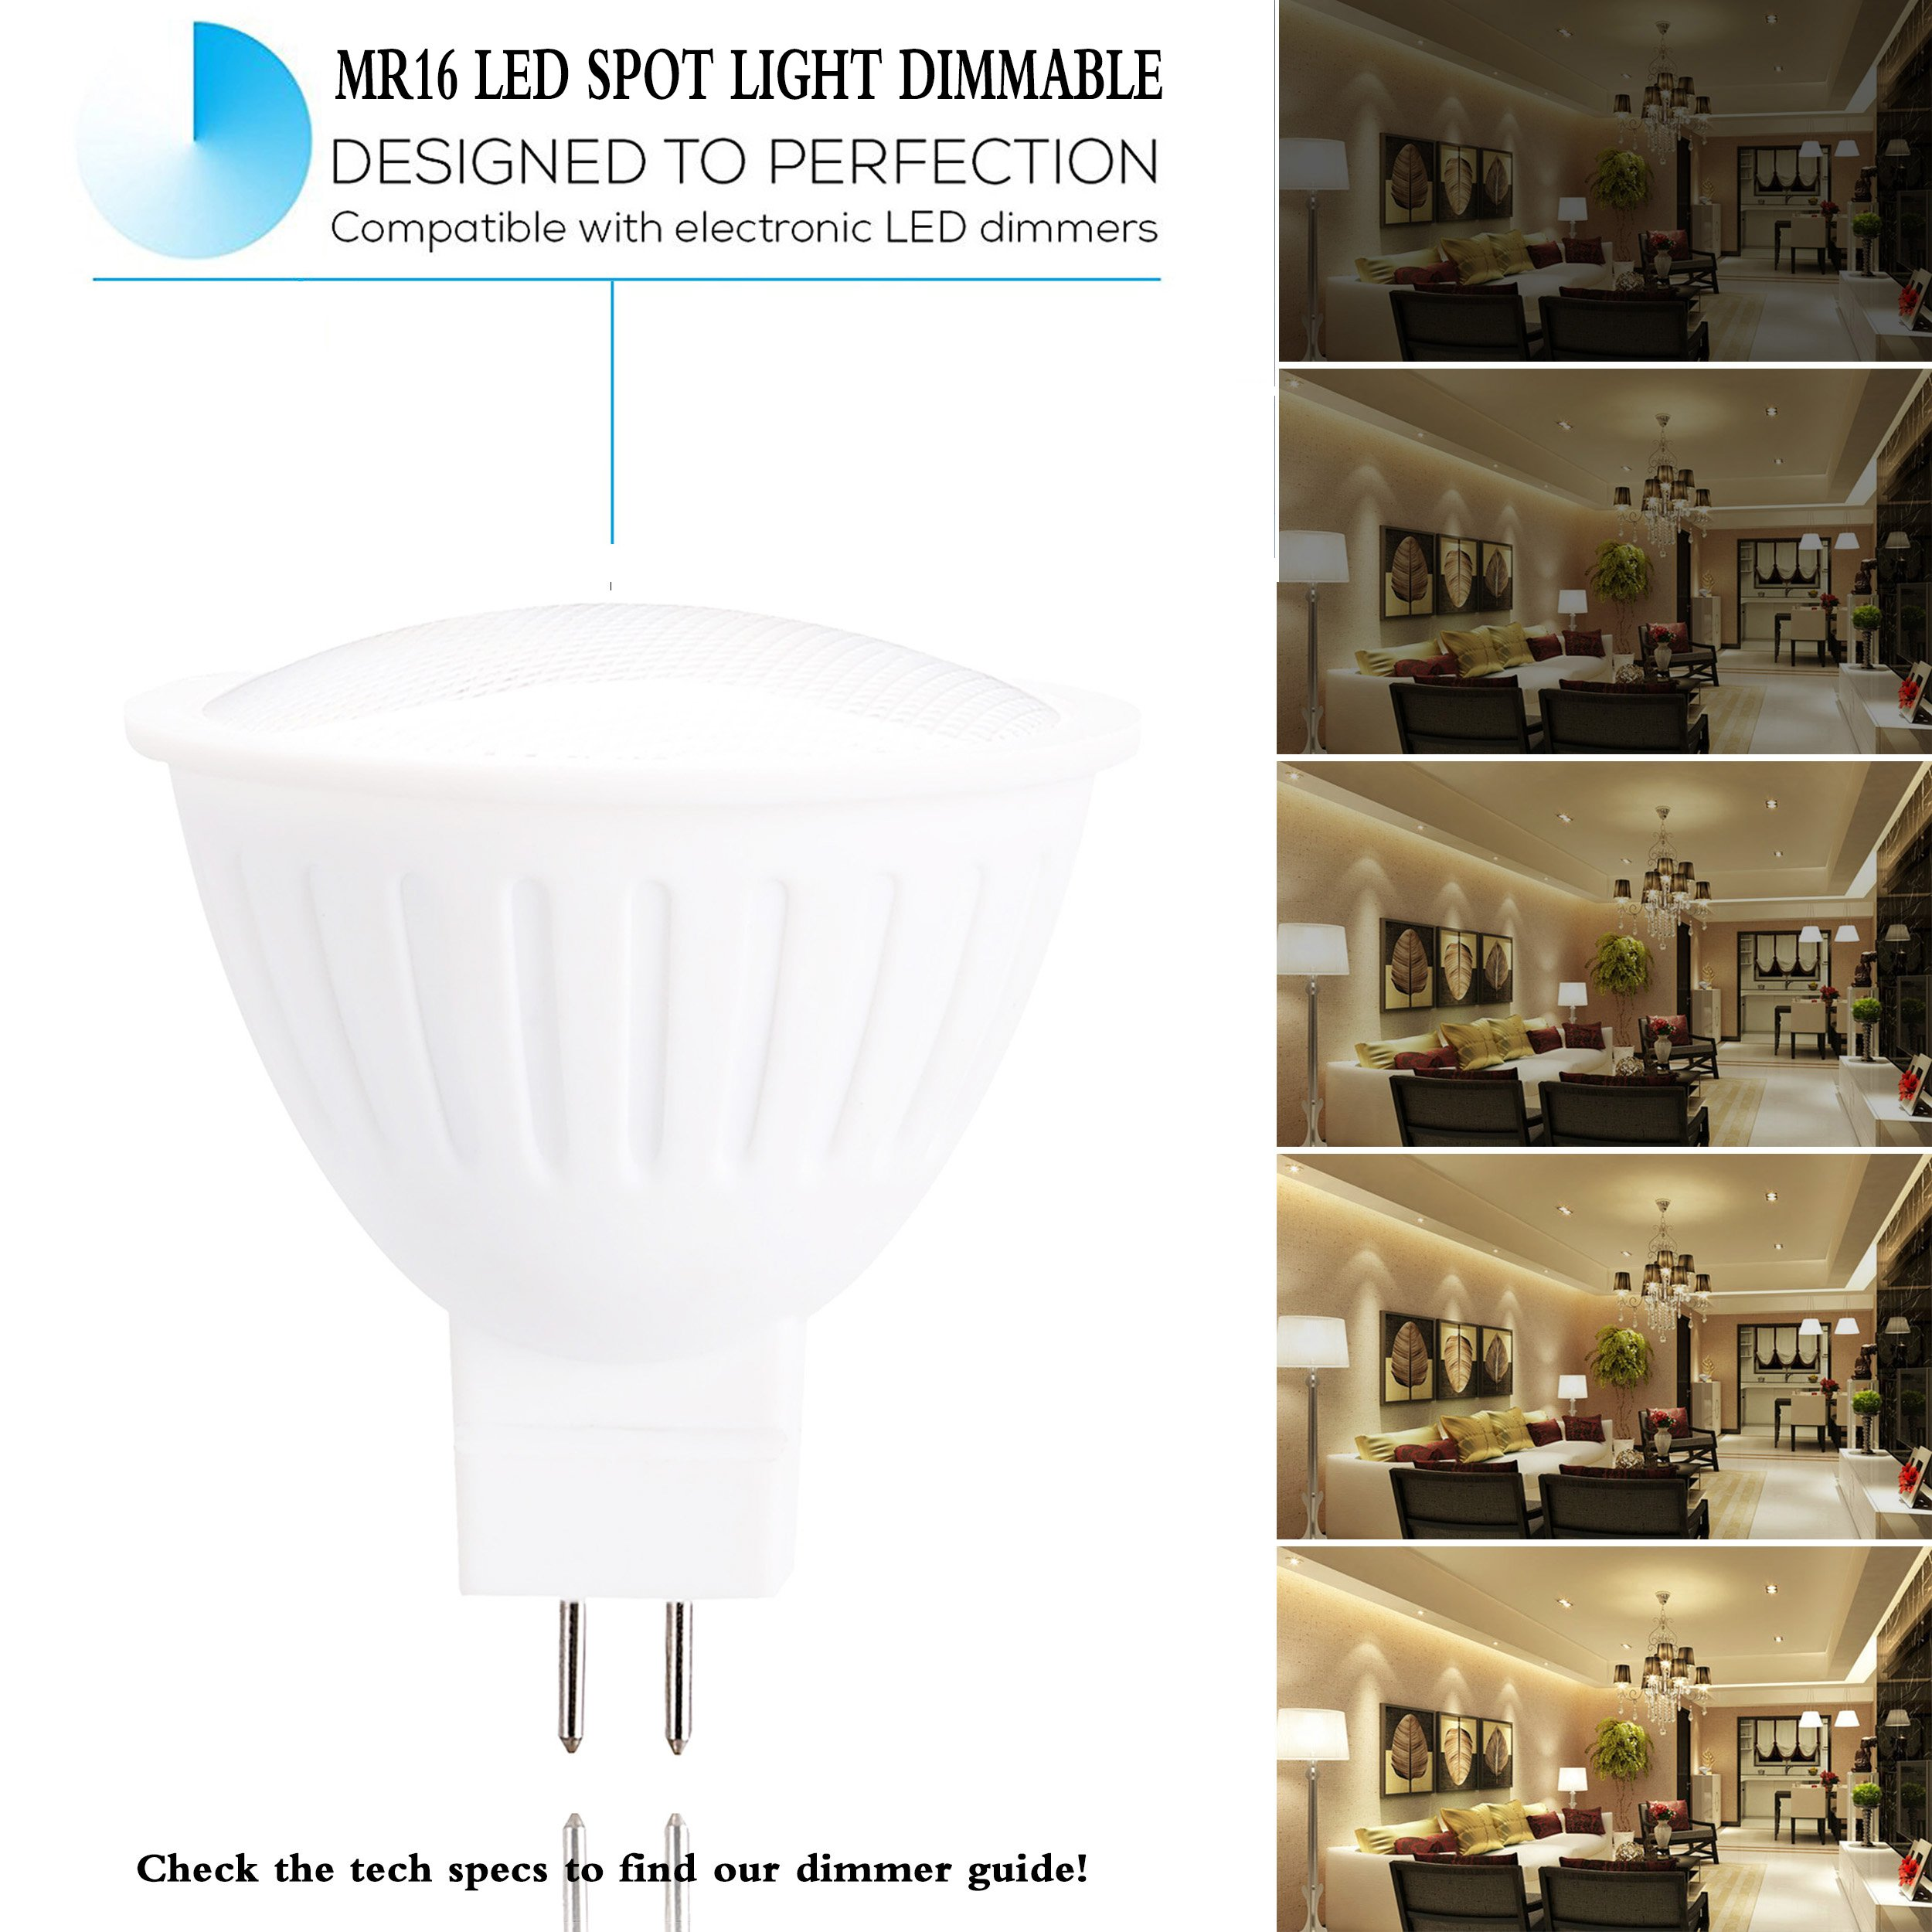 5W MR16 LED Spot lamp Bulb, 120Volts,50W Halogen Replacement, Dimmable, 4000K Natural White, 500 Lumens, 120° Beam Angle LED Spotlight, GU5.3 Base, Track Lights, Kitchen Cabinet Lights -4 Packs